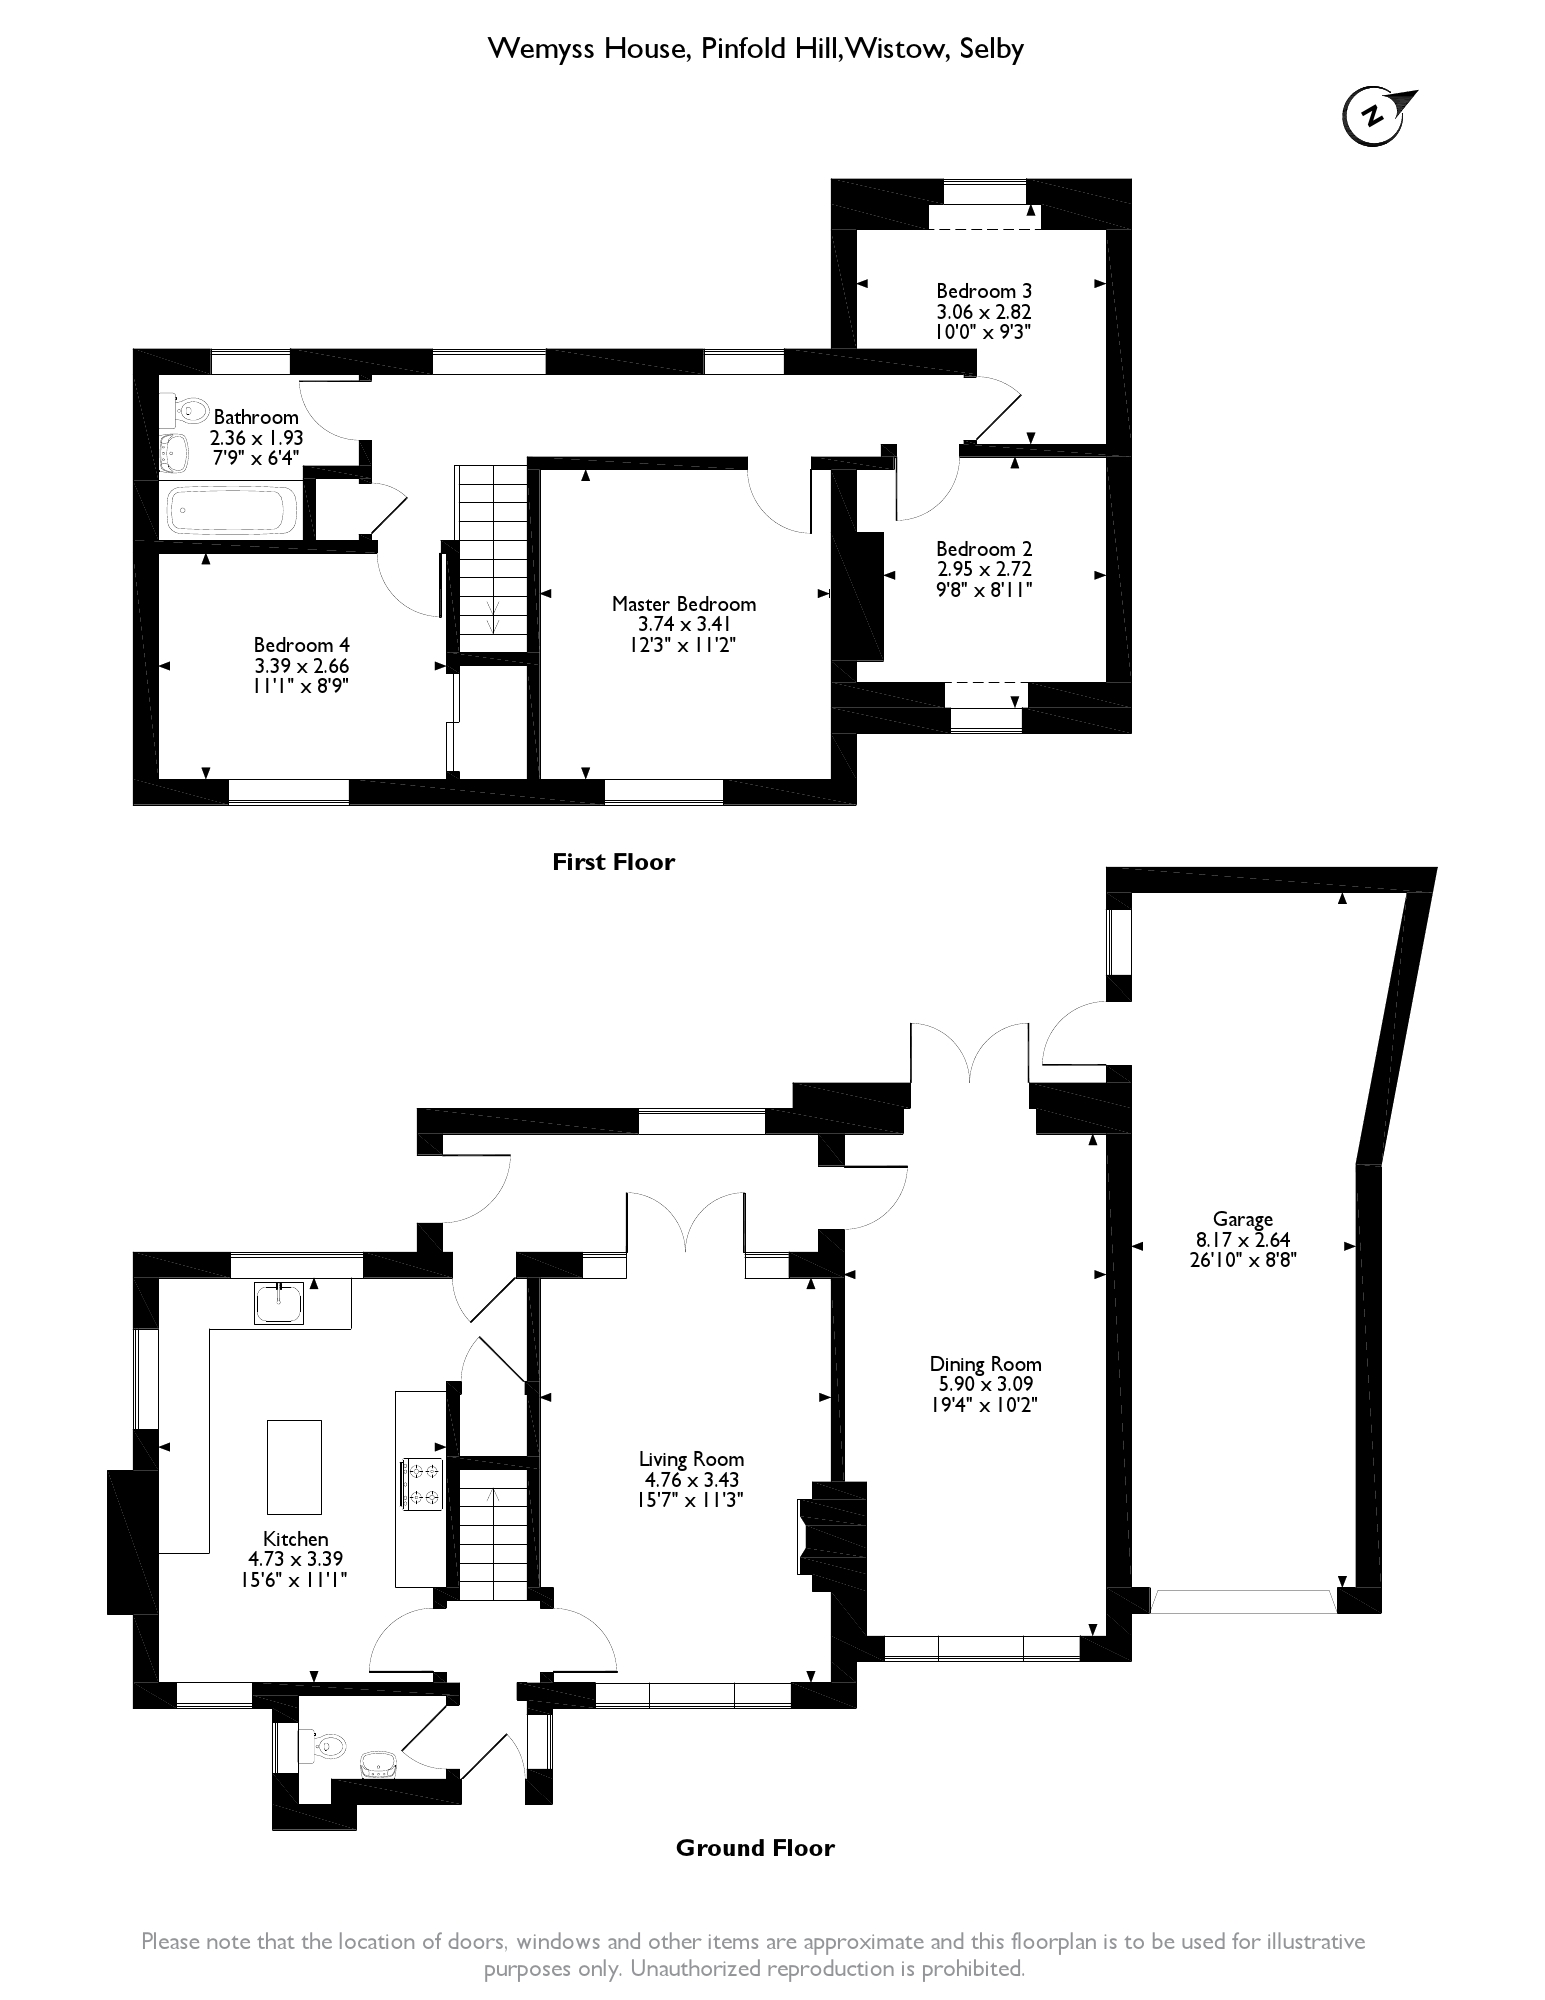 Selby, North Yorkshire floor plan